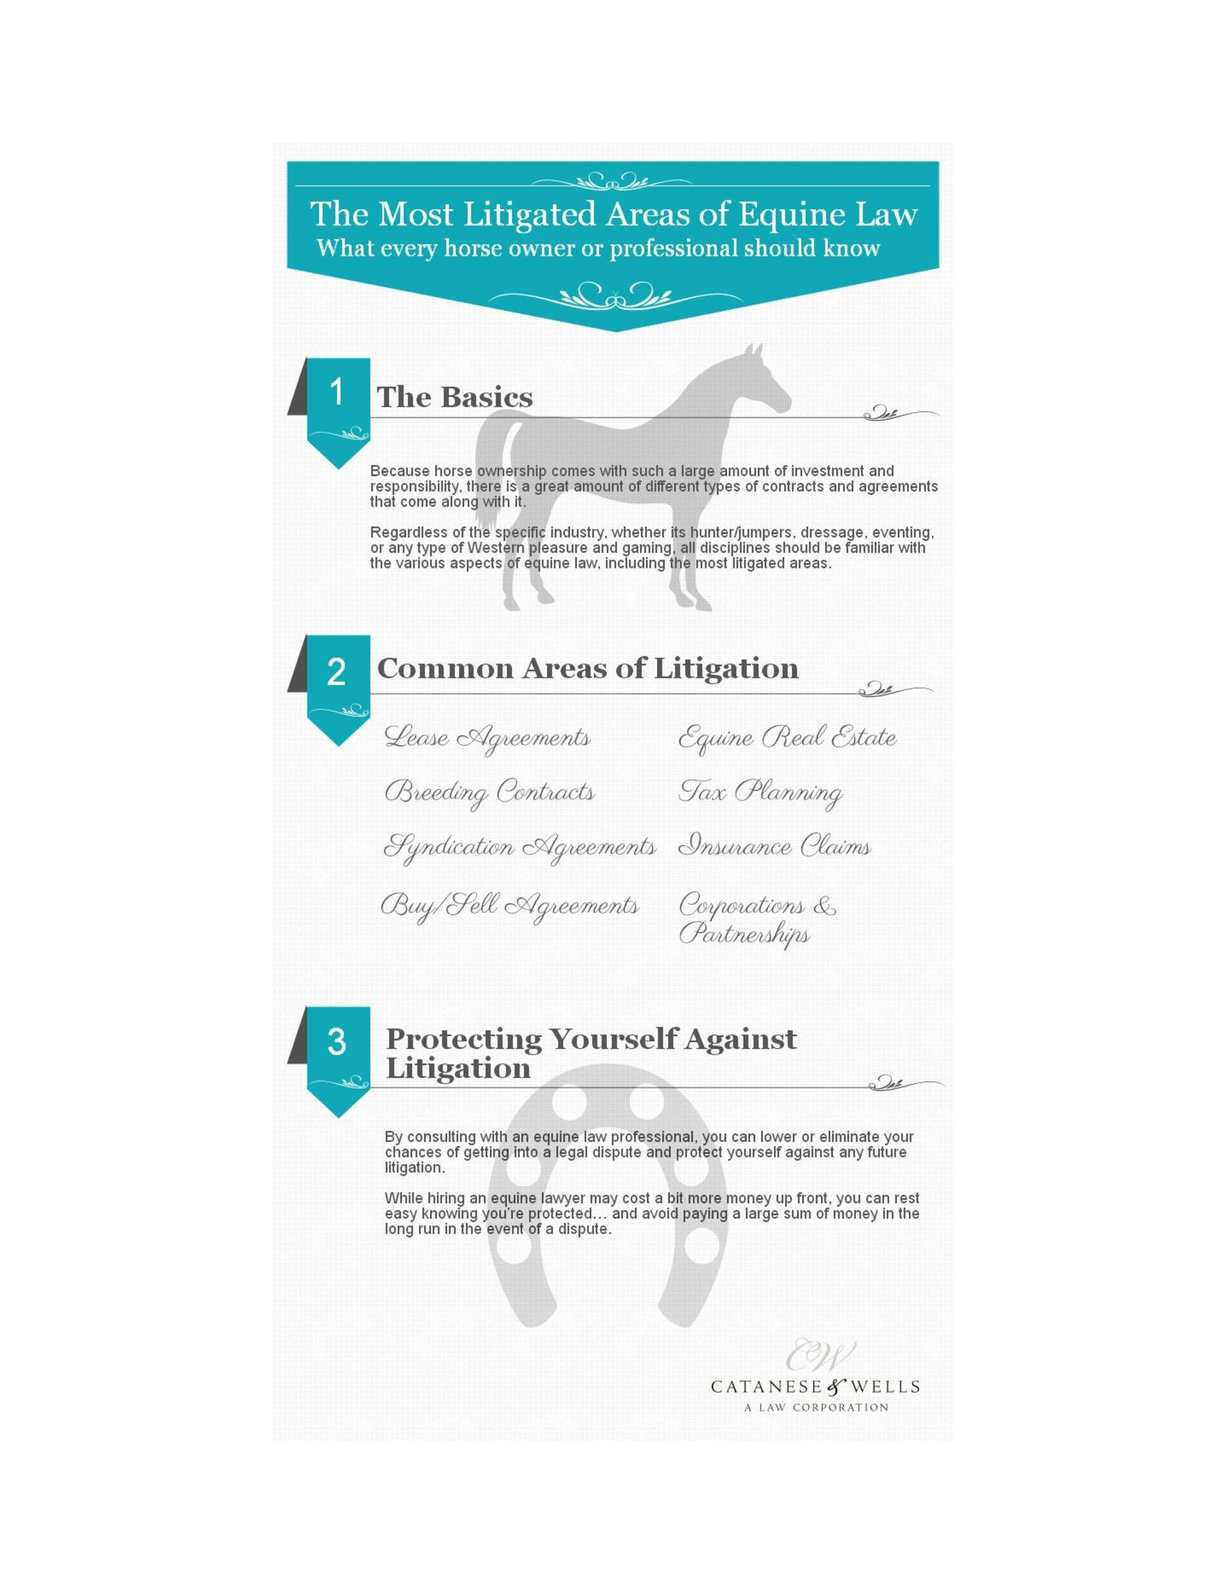 The Most Litigated Areas Of Equine Law